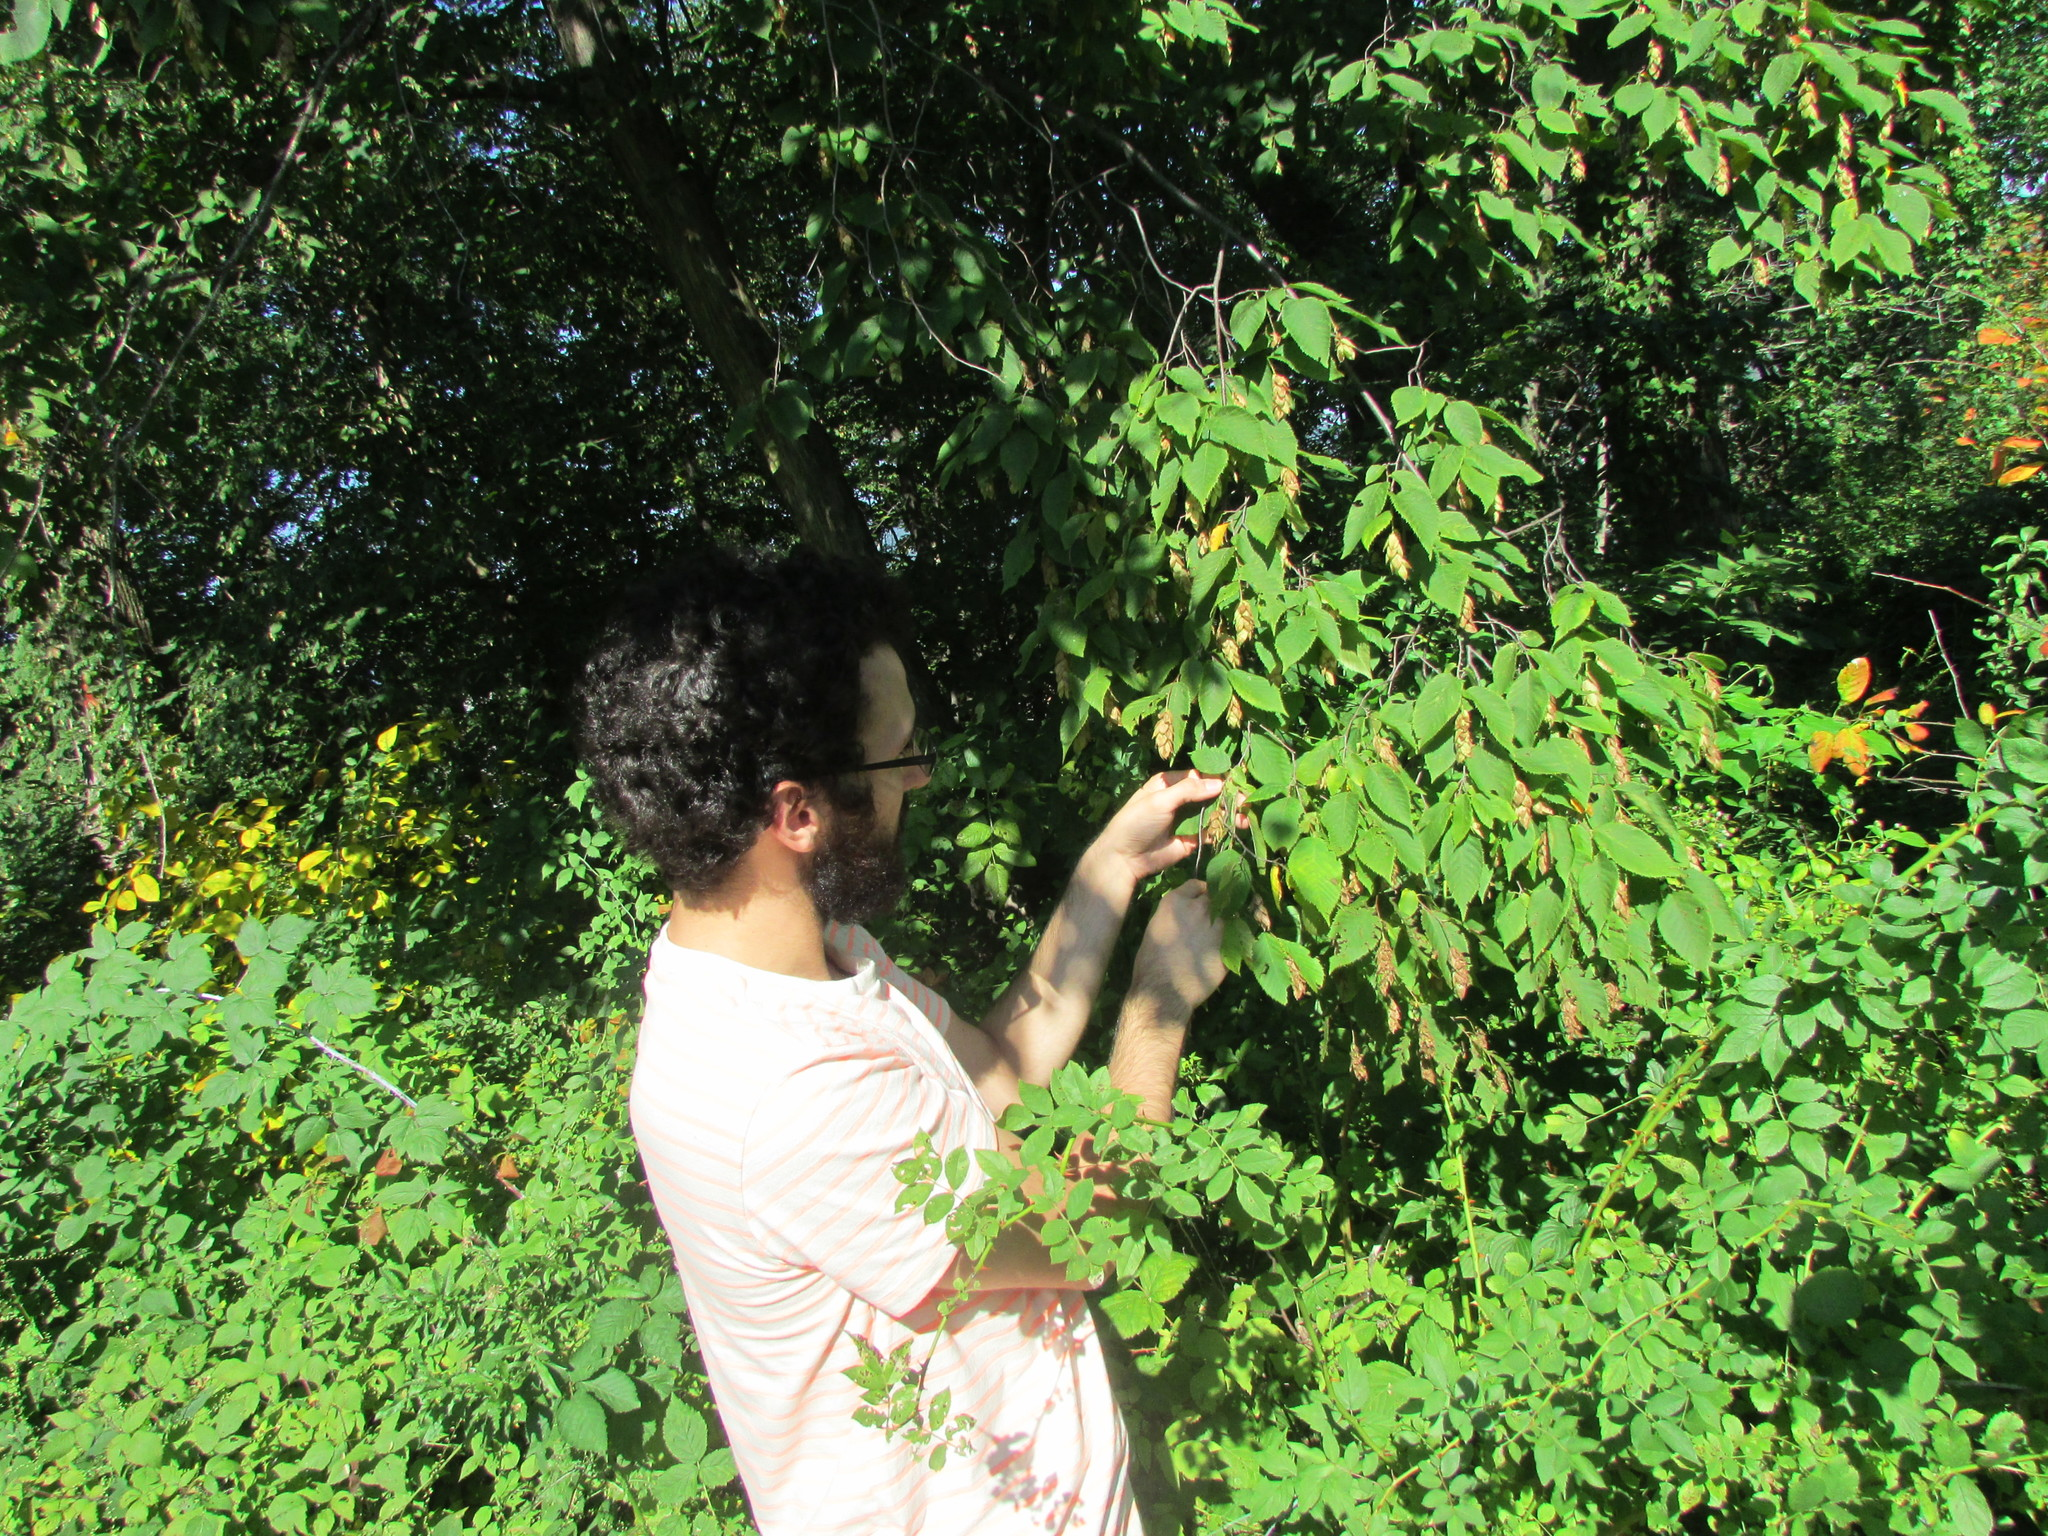 Biology Major, Nicholas Kremp, studying vegetation to determine what type of plant species are present.